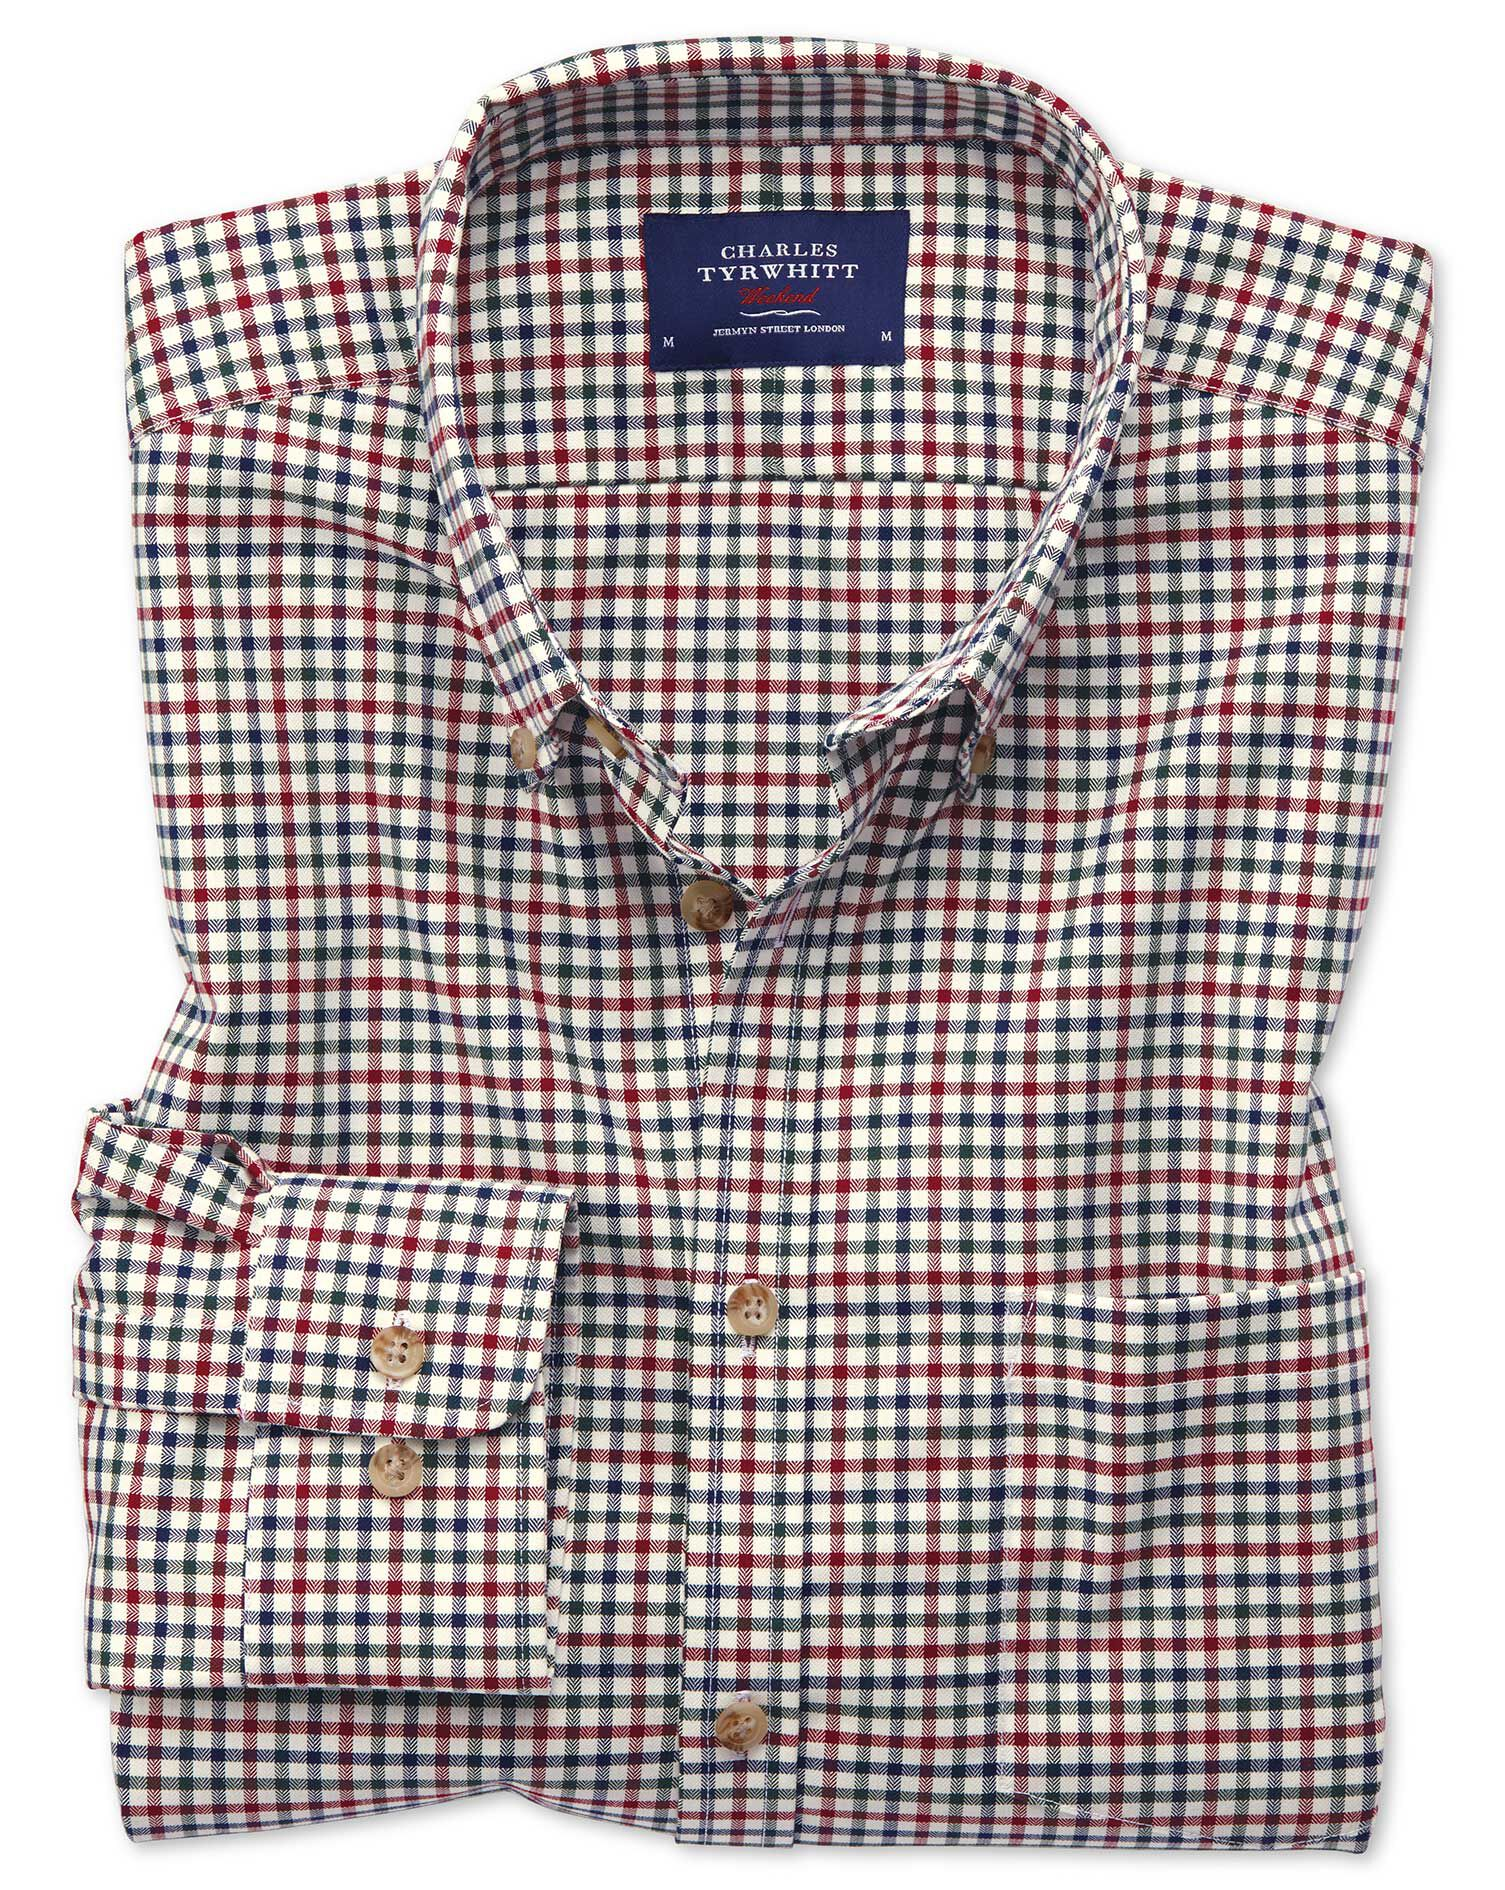 Classic Fit Button-Down Non-Iron Twill Multi Gingham Cotton Shirt Single Cuff Size Small by Charles